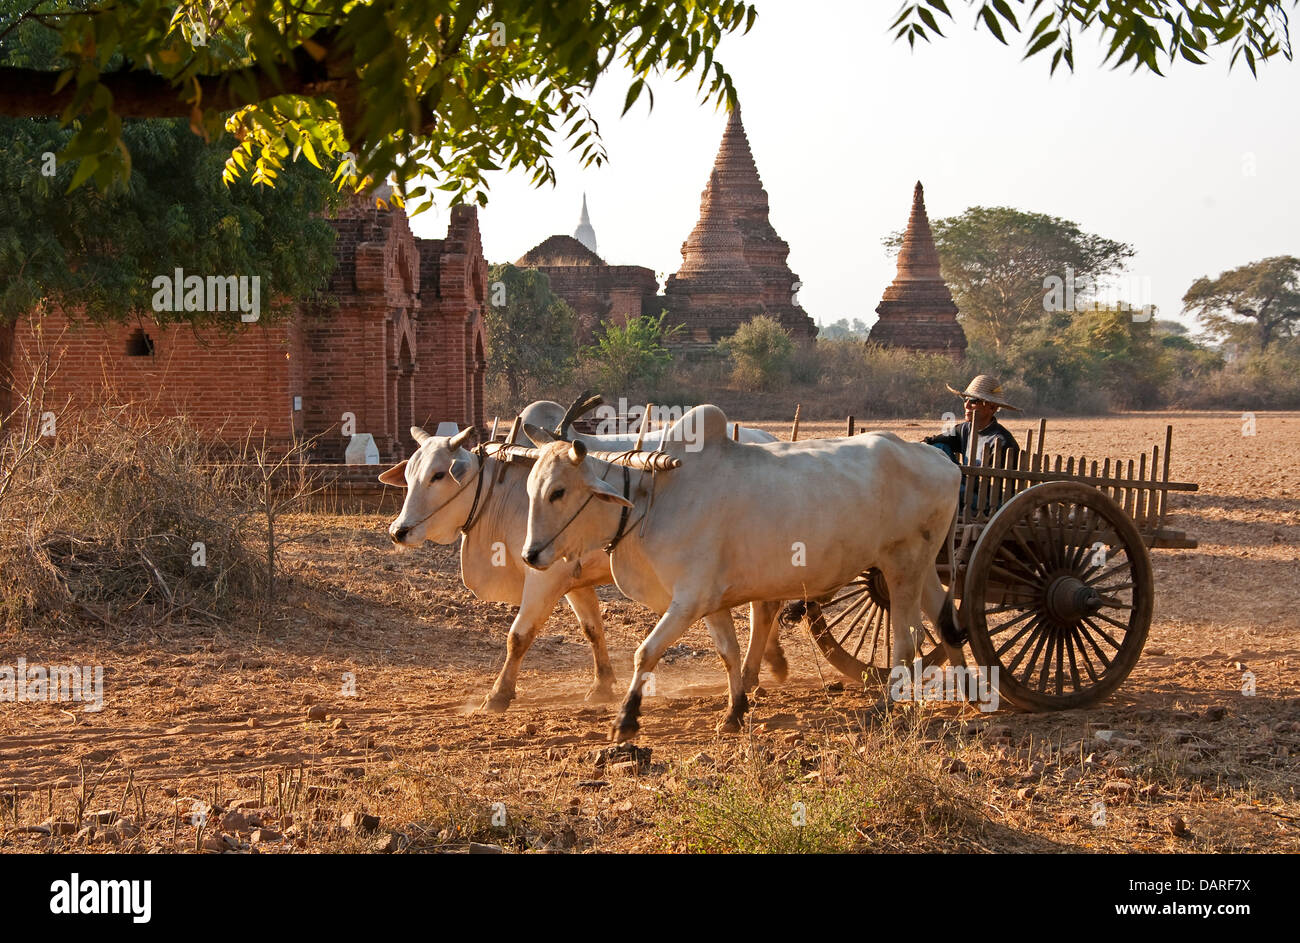 Ox cart and temples on Bagan Plain of Myanmar. - Stock Image